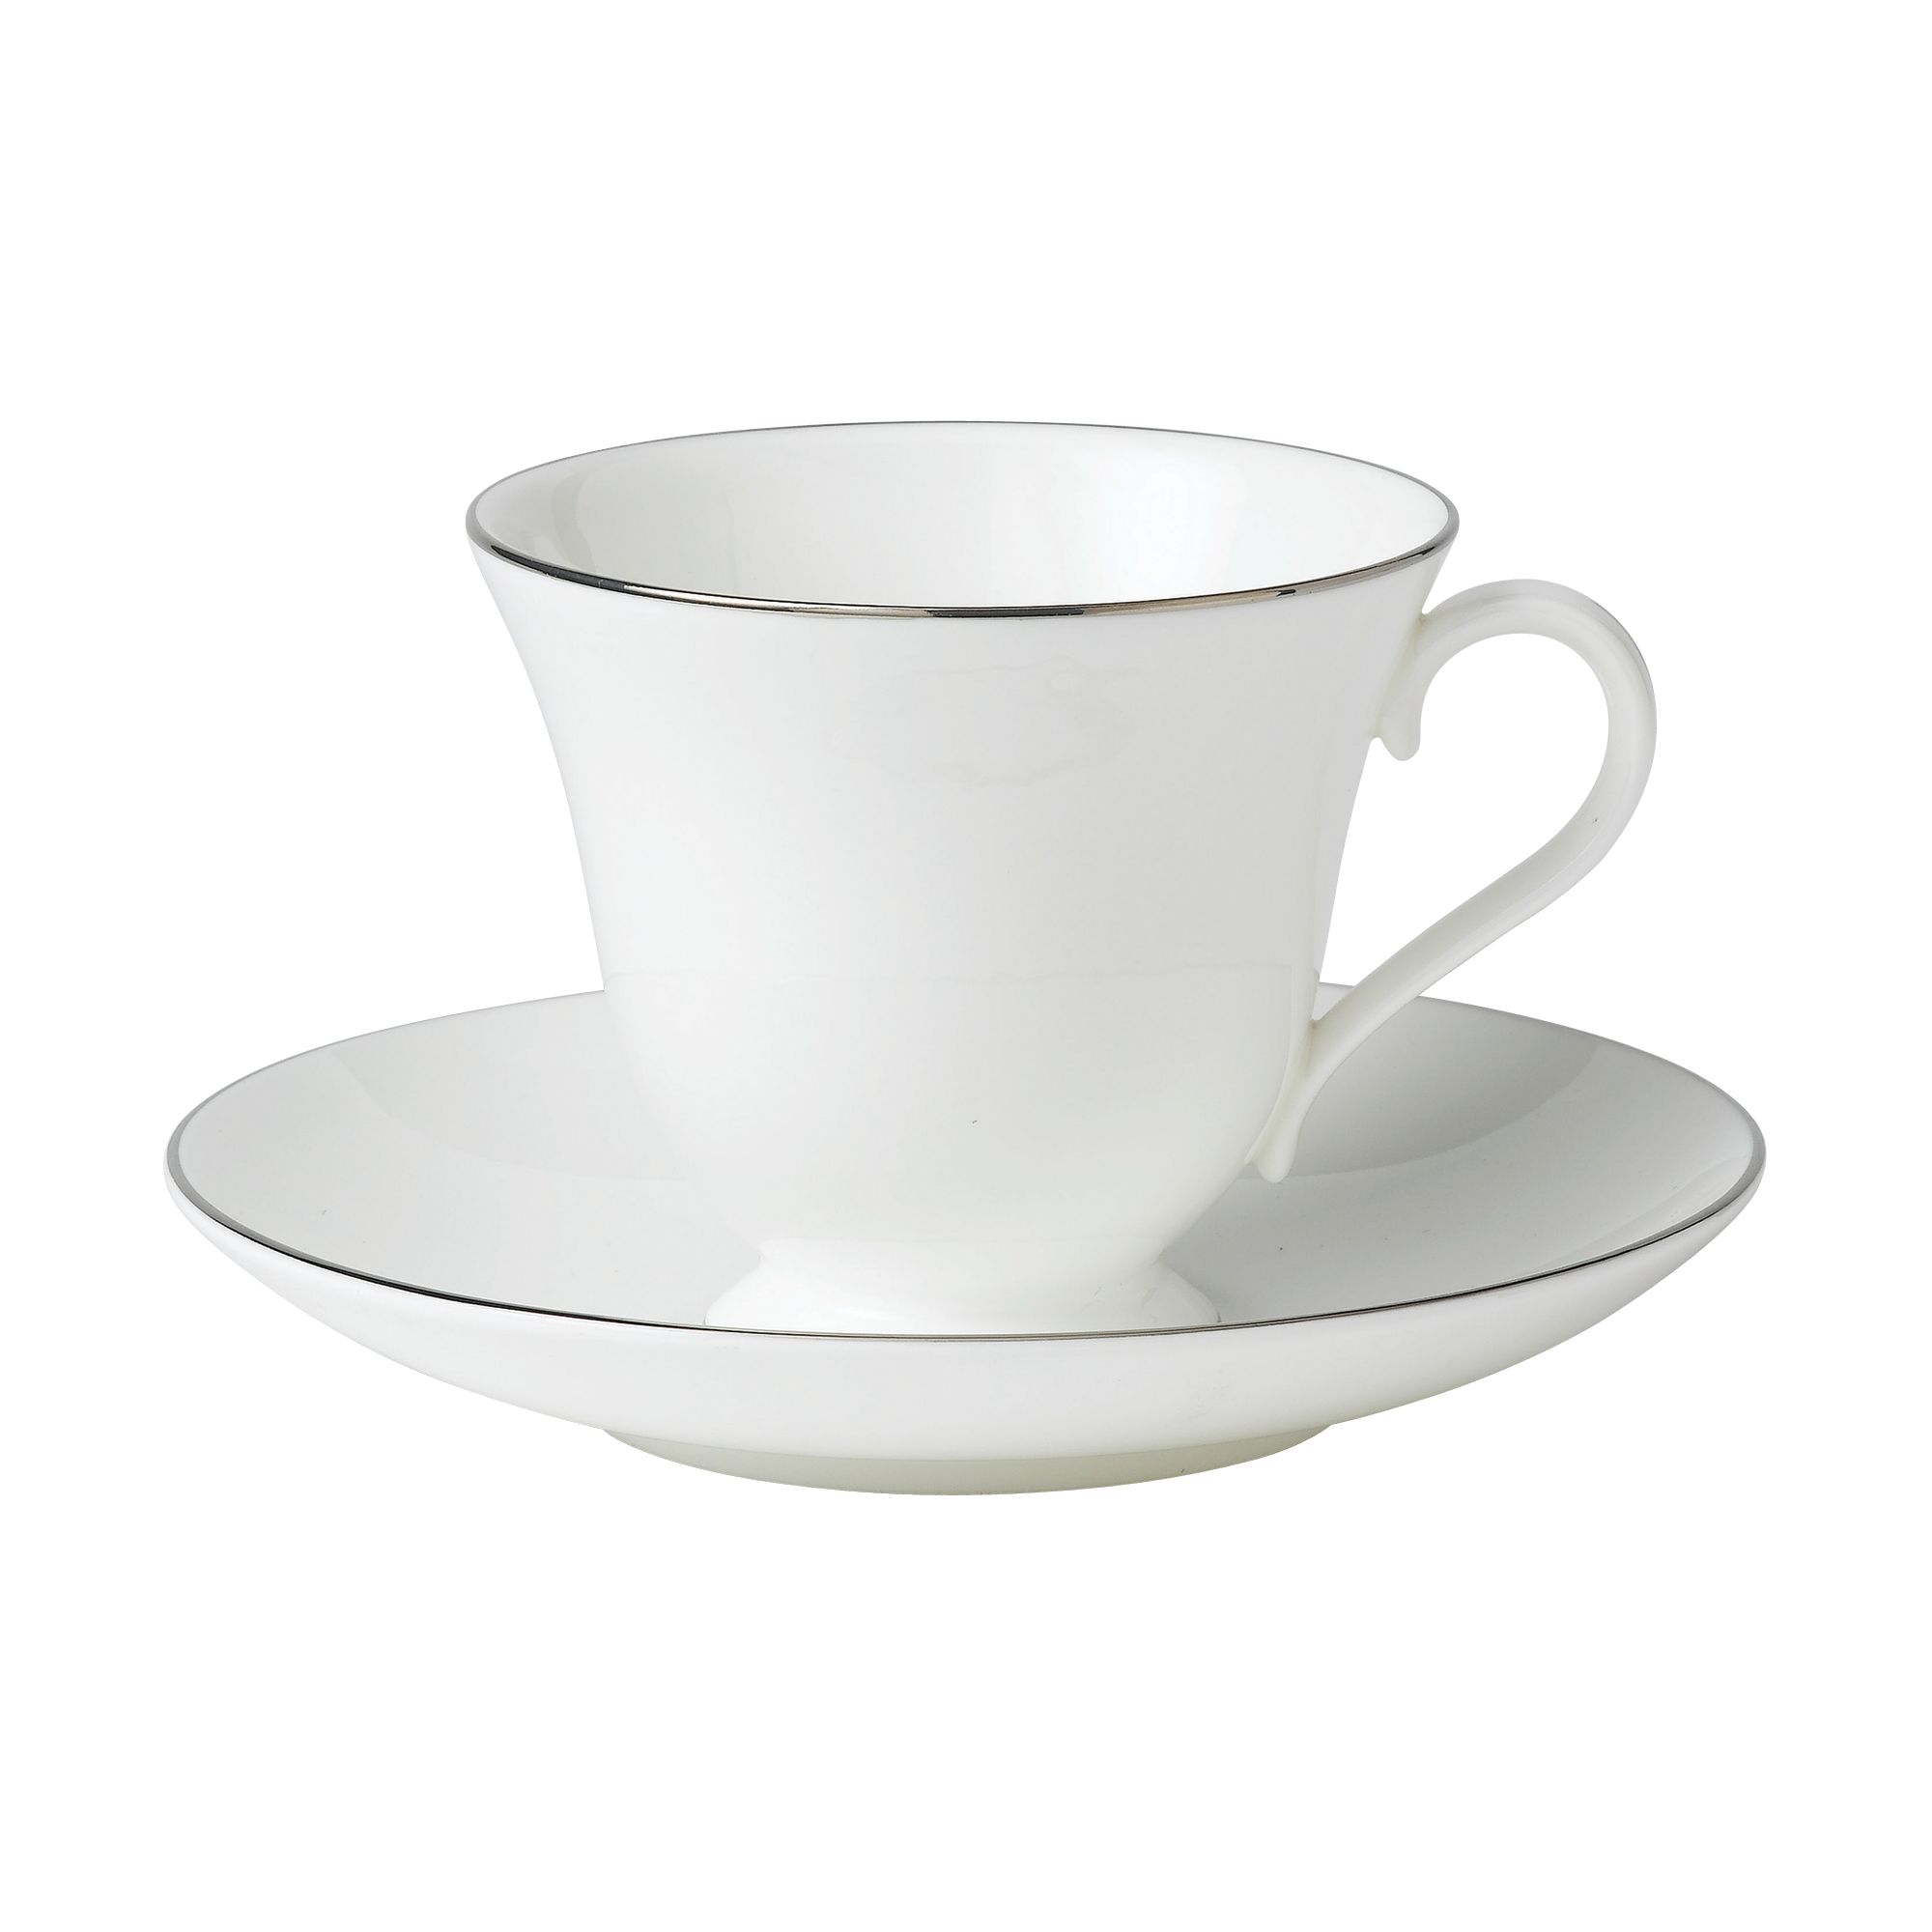 Signet platinum fine china tea saucer